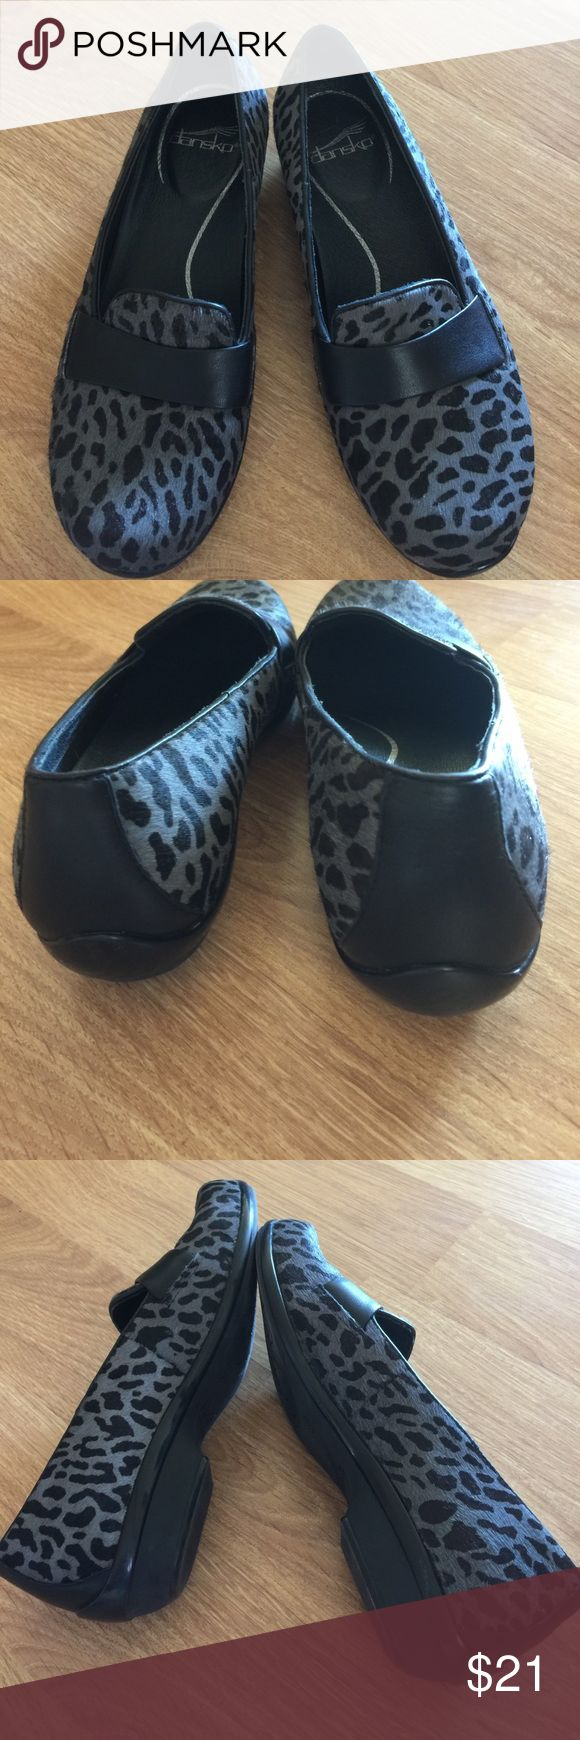 dansko black/gray leopard print loafers sz 36 (6) dansko black and gray leather upper flats. 1/2 inch heel. Black leather forefoot band. Short hair(cowhide-like) texture. Size 36 (6). Like-new condition. Nonsmoking home. Dansko Shoes Flats & Loafers